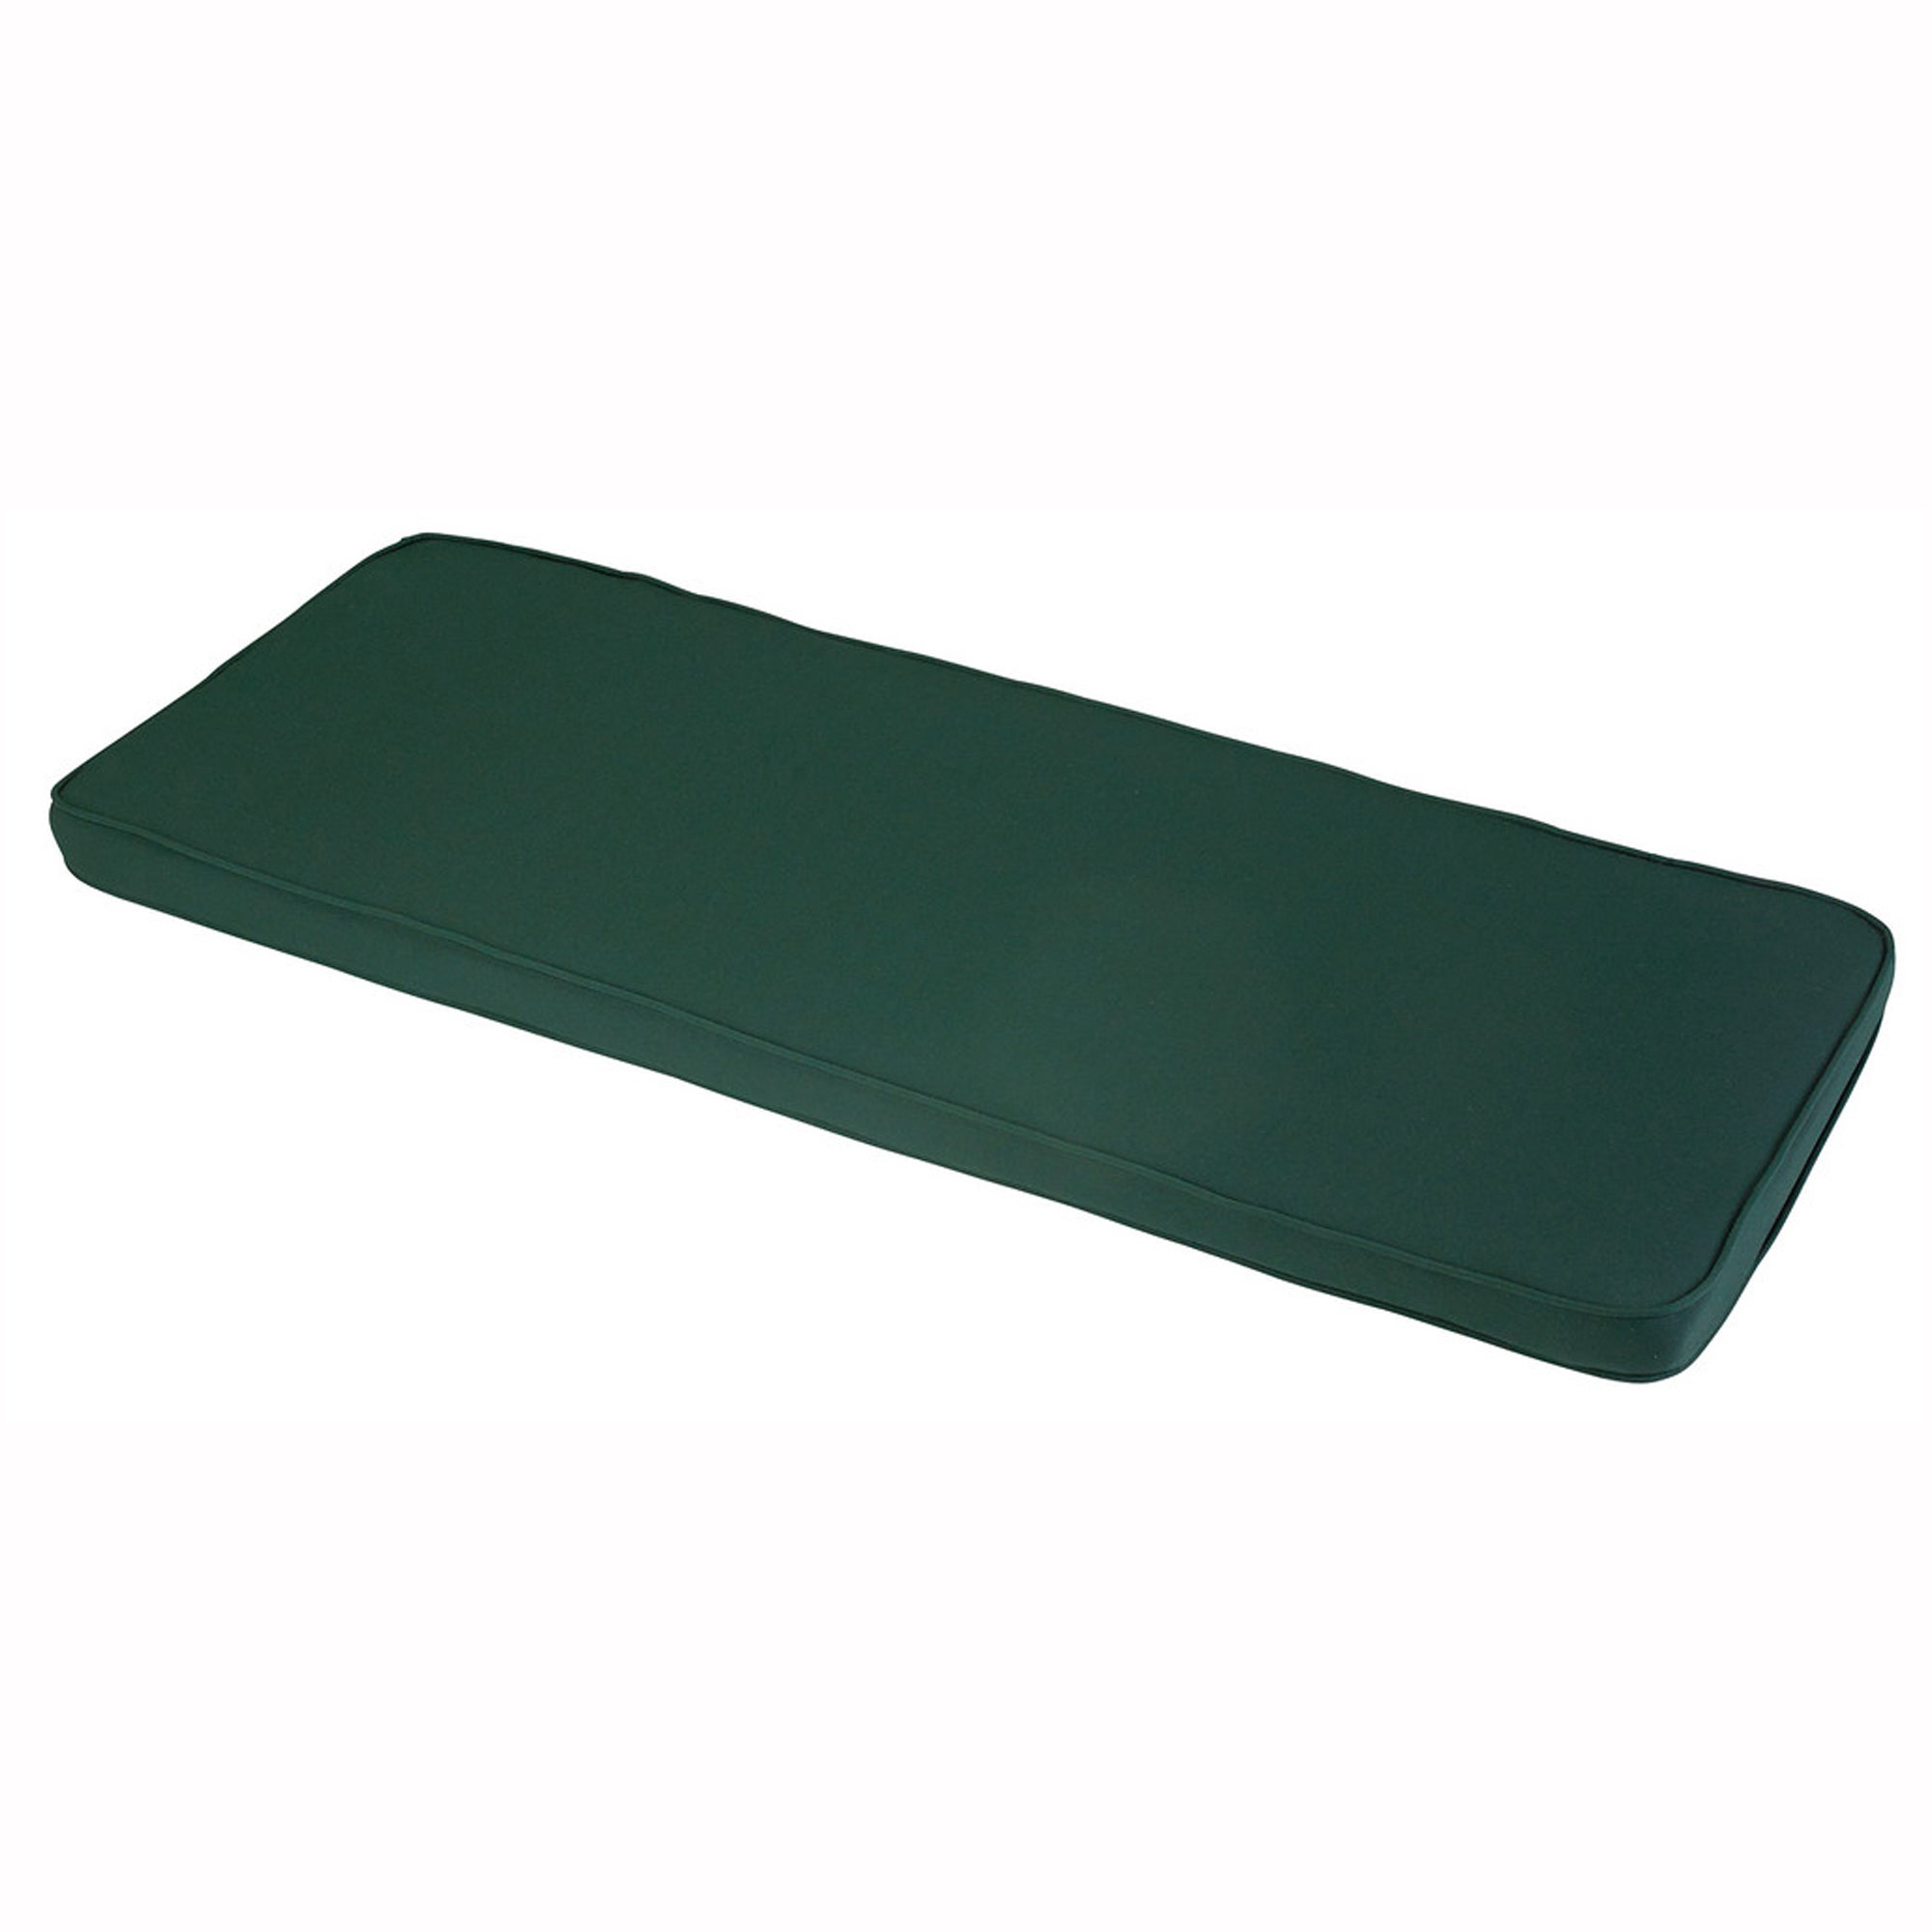 Glendale Leisure Glendale 2 Seater Outdoor Bench Pad Green